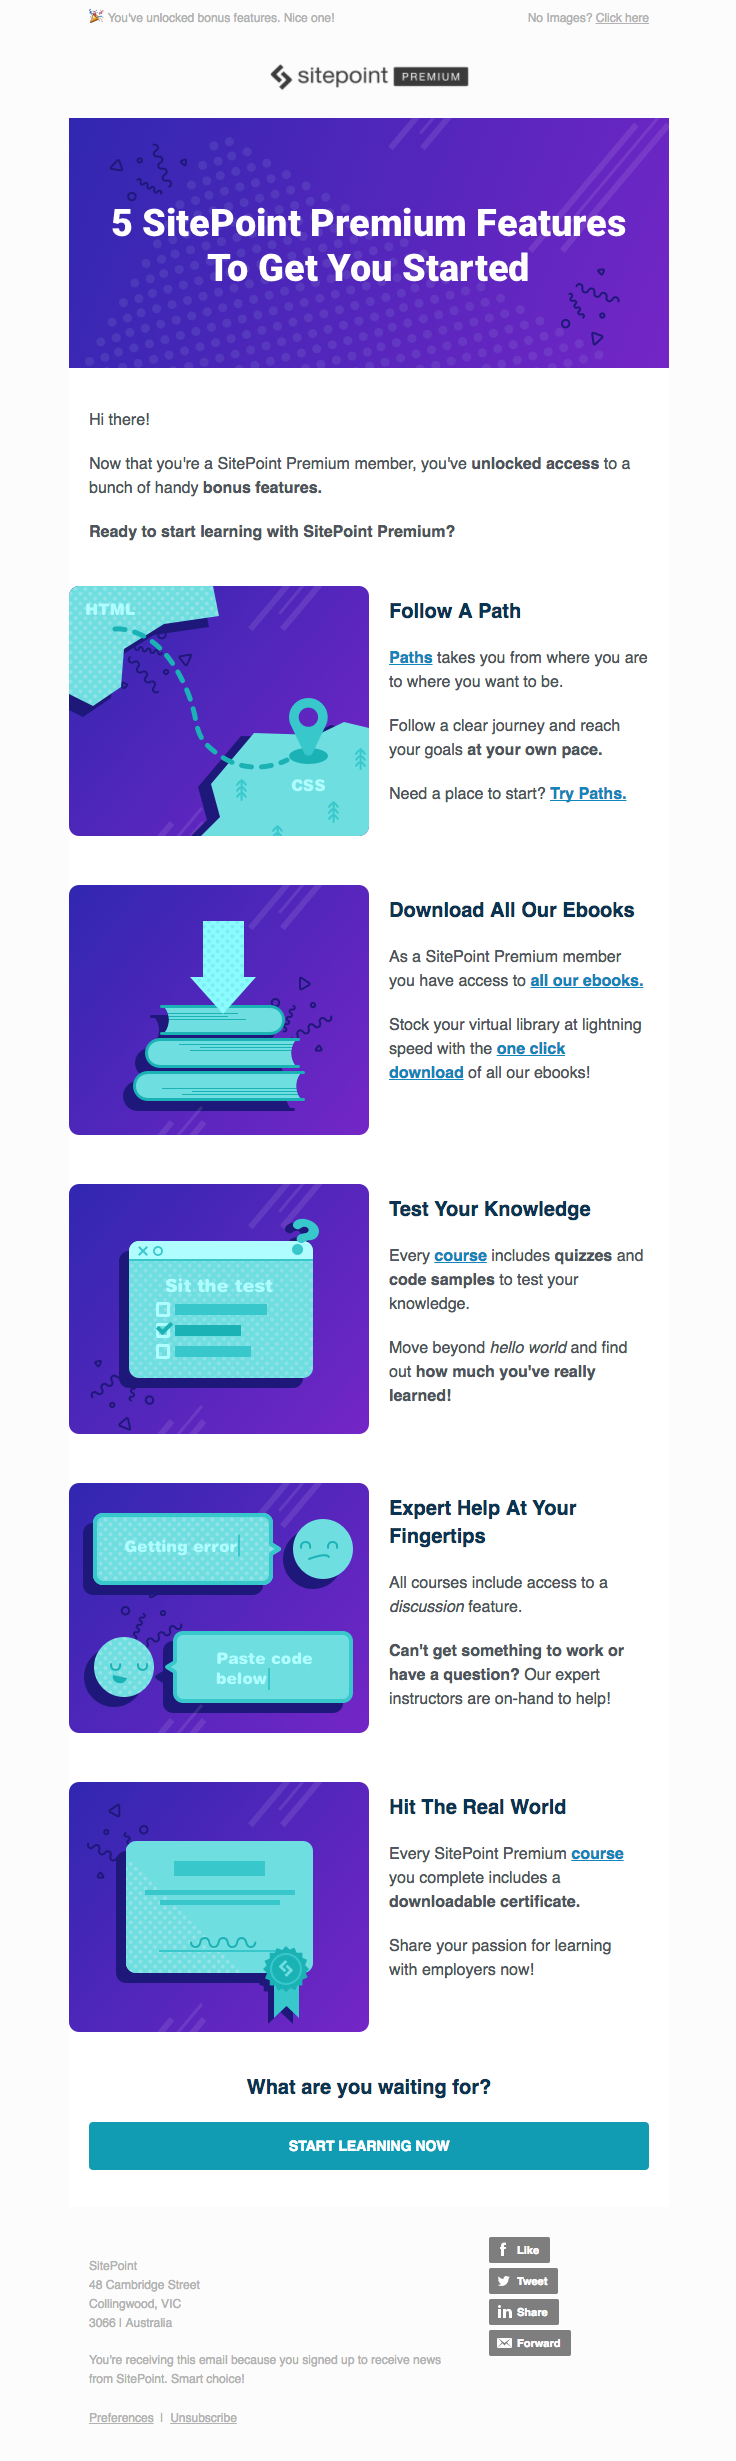 Sitepoint sent this email with the subject line: Howdy, start learning now! - Read about this email and find more welcome emails at ReallyGoodEmails.com #onboarding #welcome